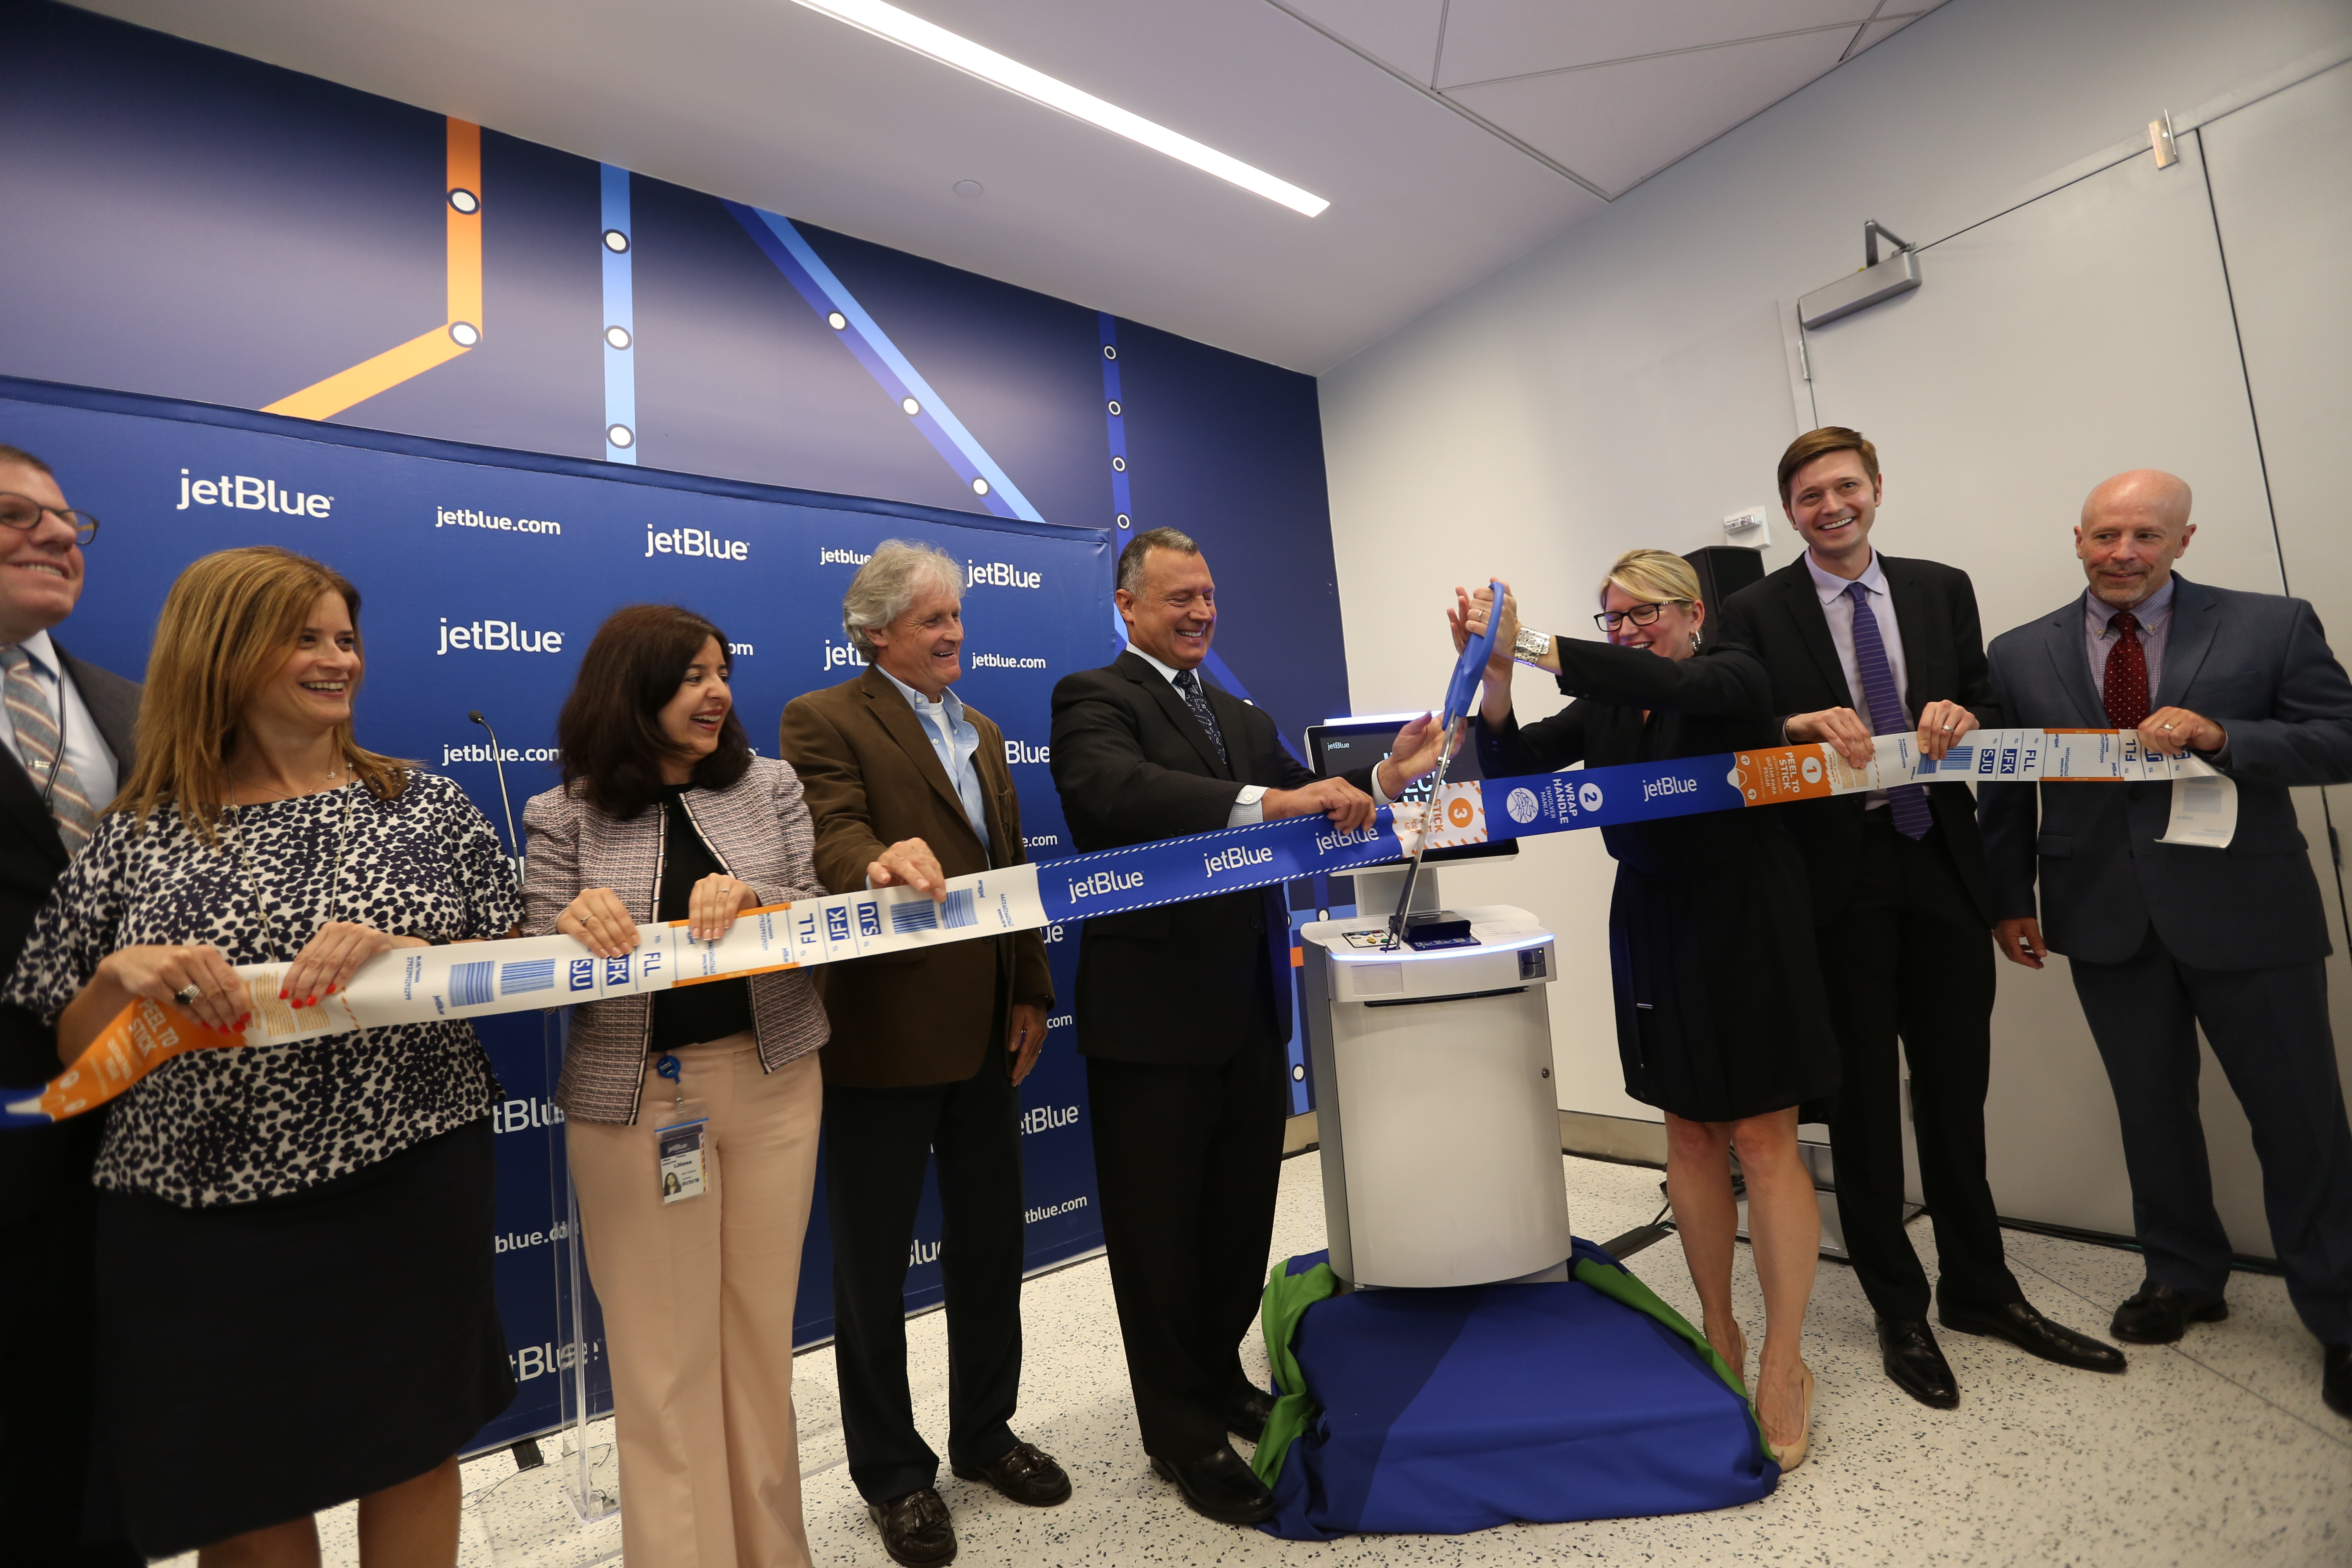 The New T5: JetBlue Rethinks Customer Experience